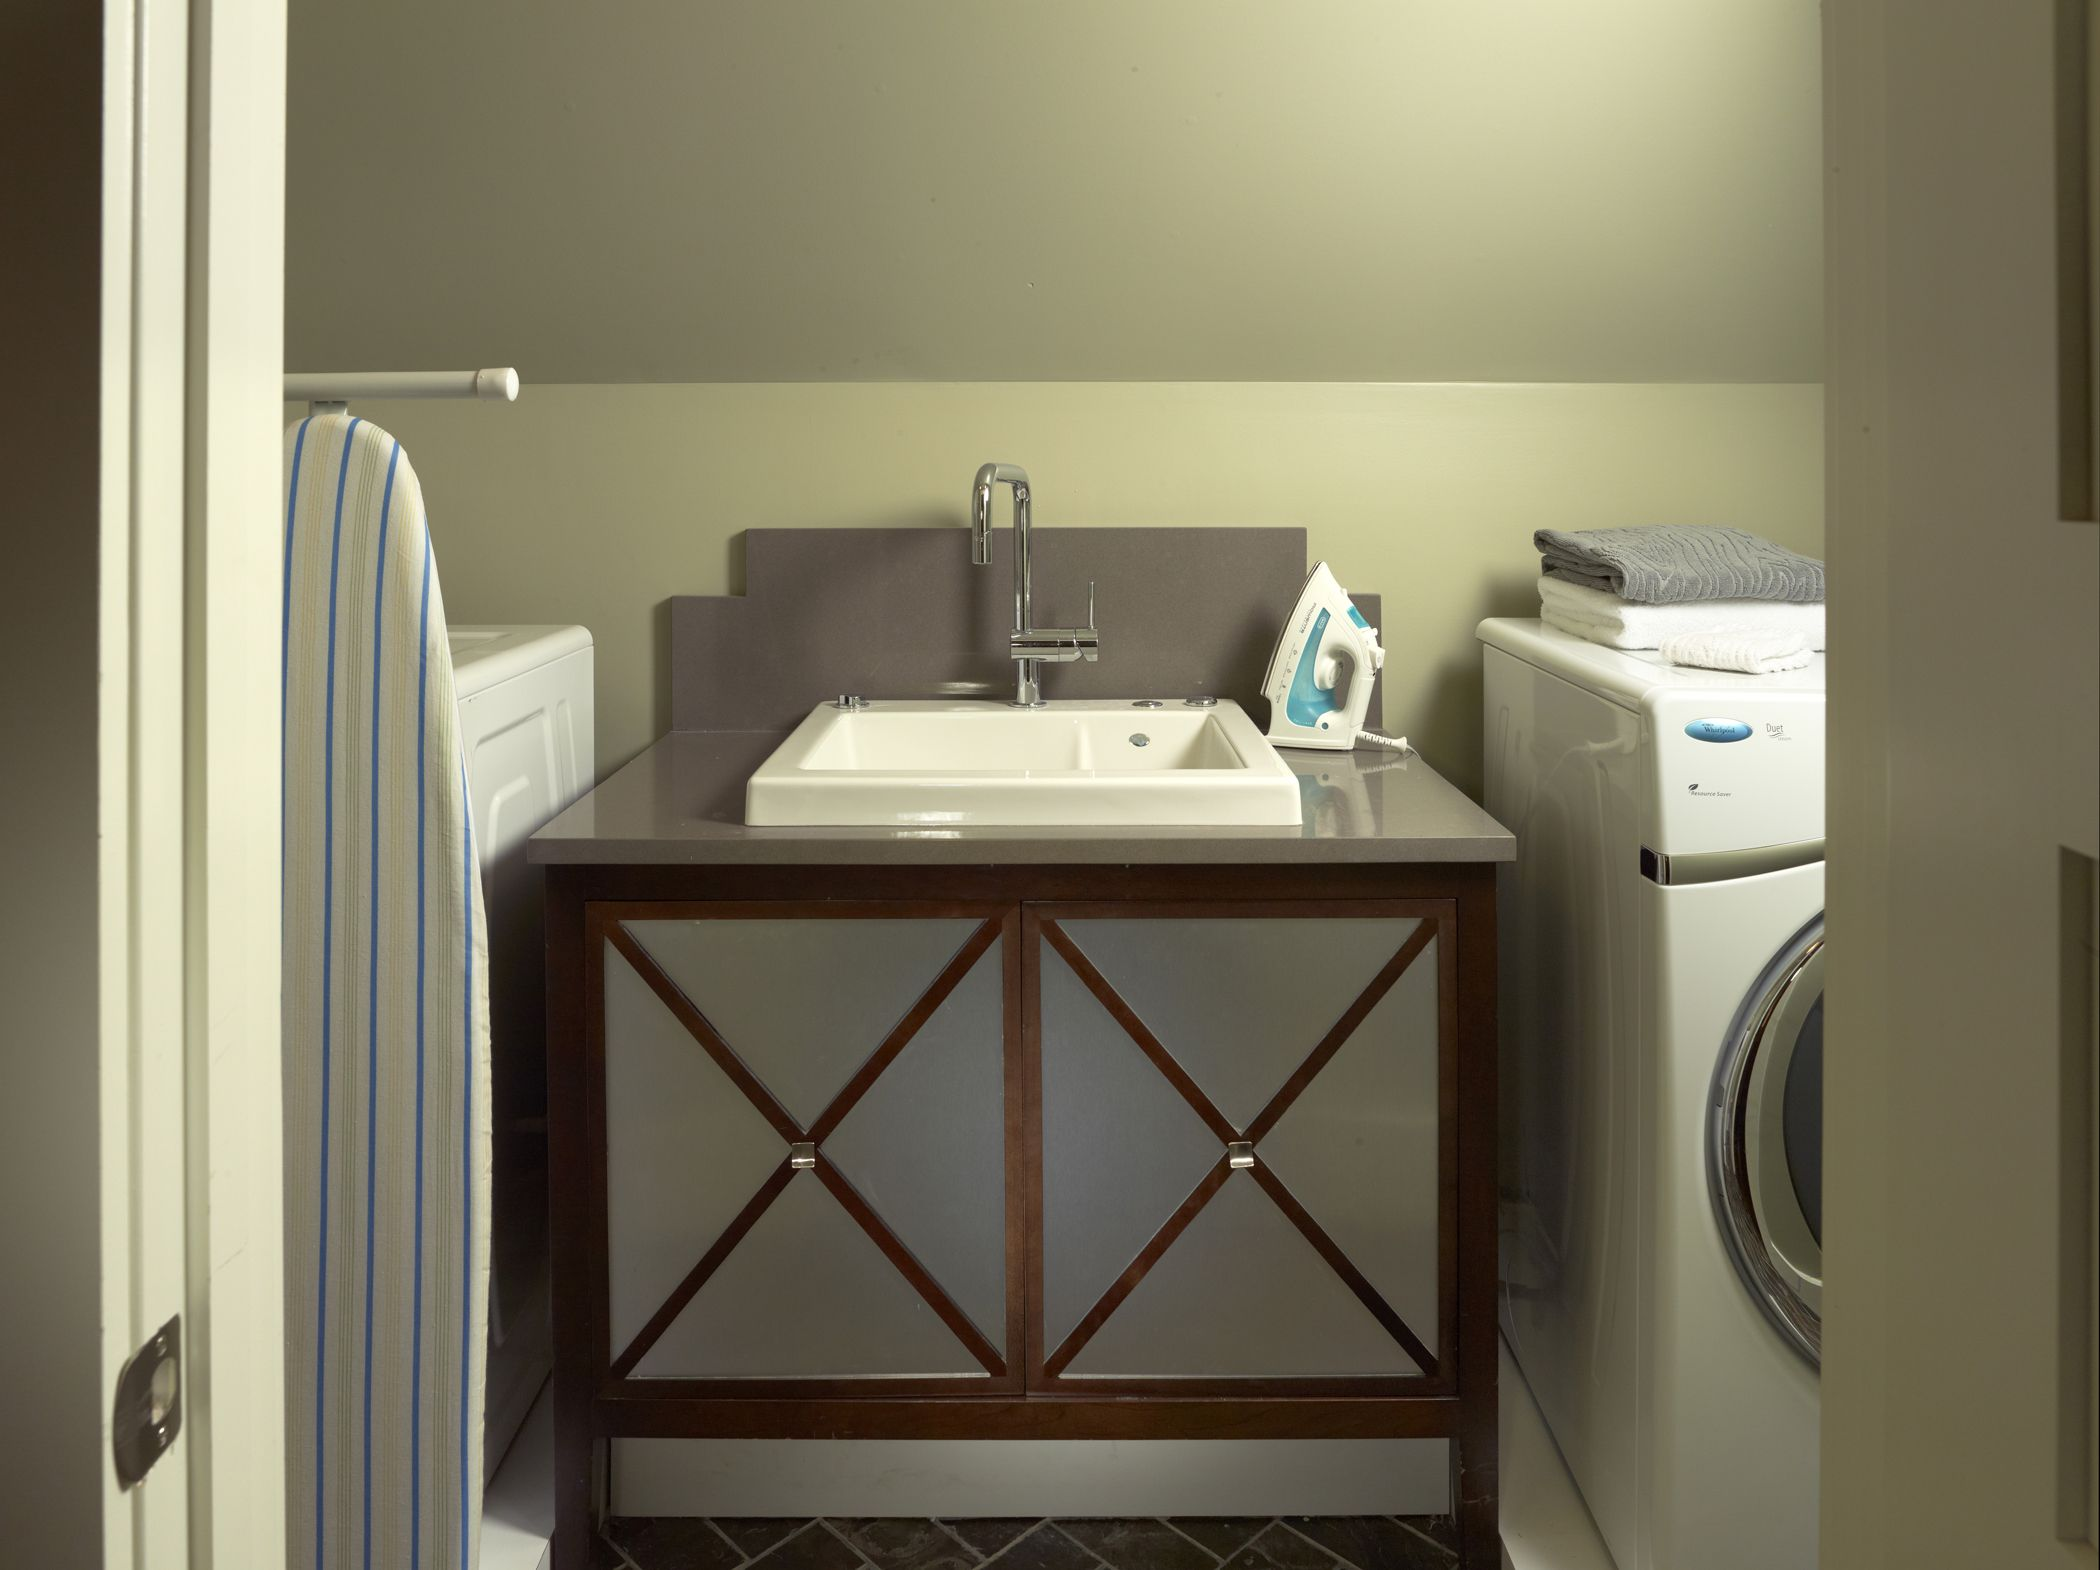 MTI Jentle Jet® Jetted Laundry Sink In The Laundry Room.